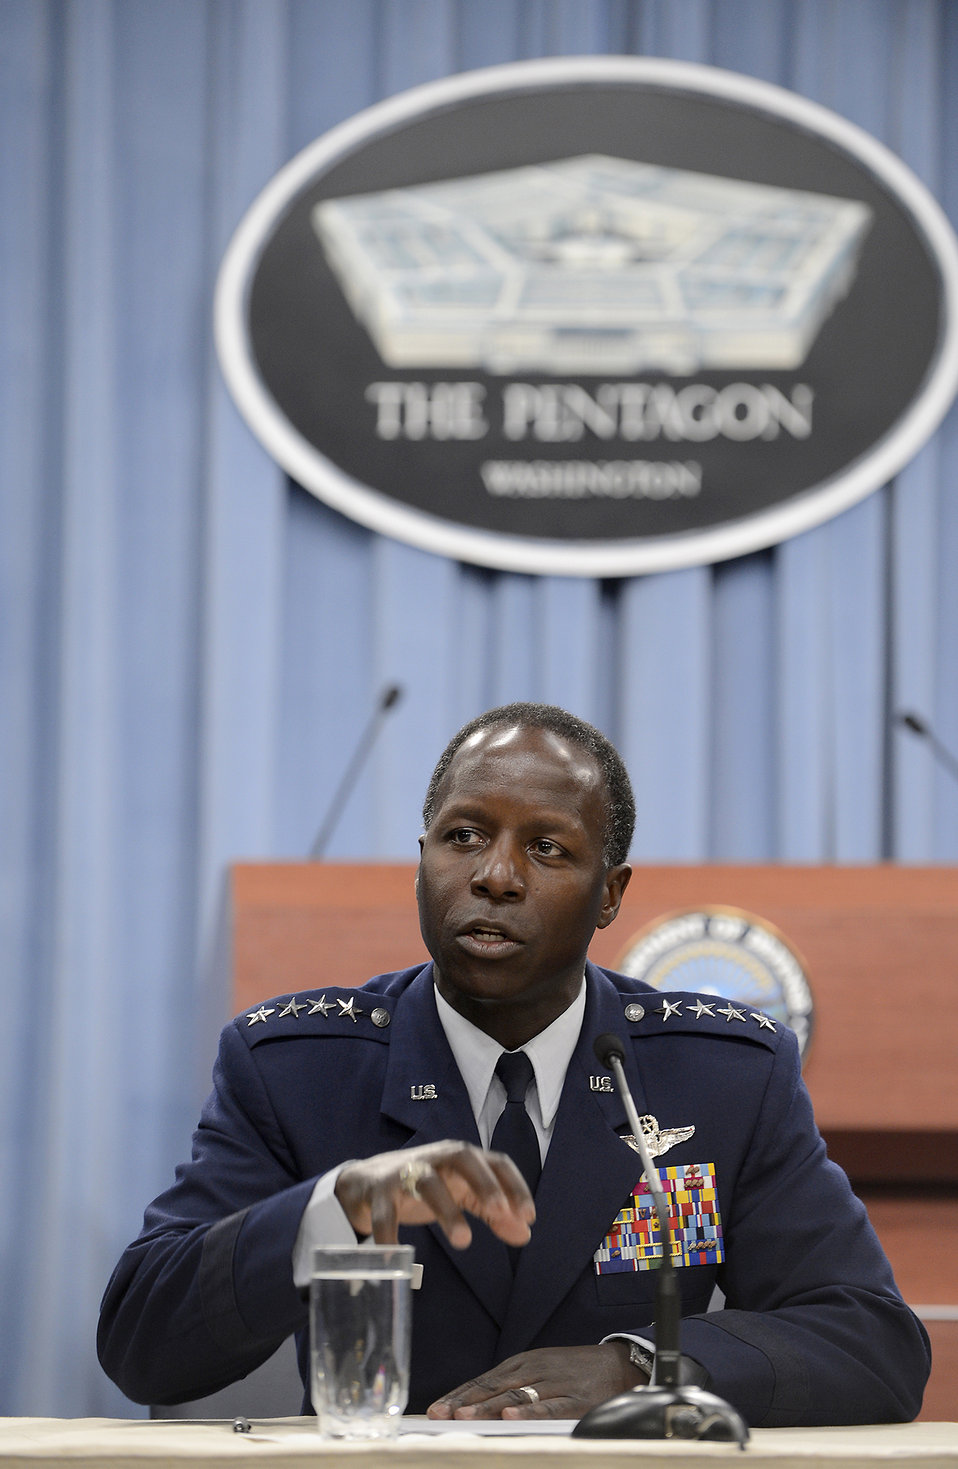 BMT sexual misconduct investigation findings